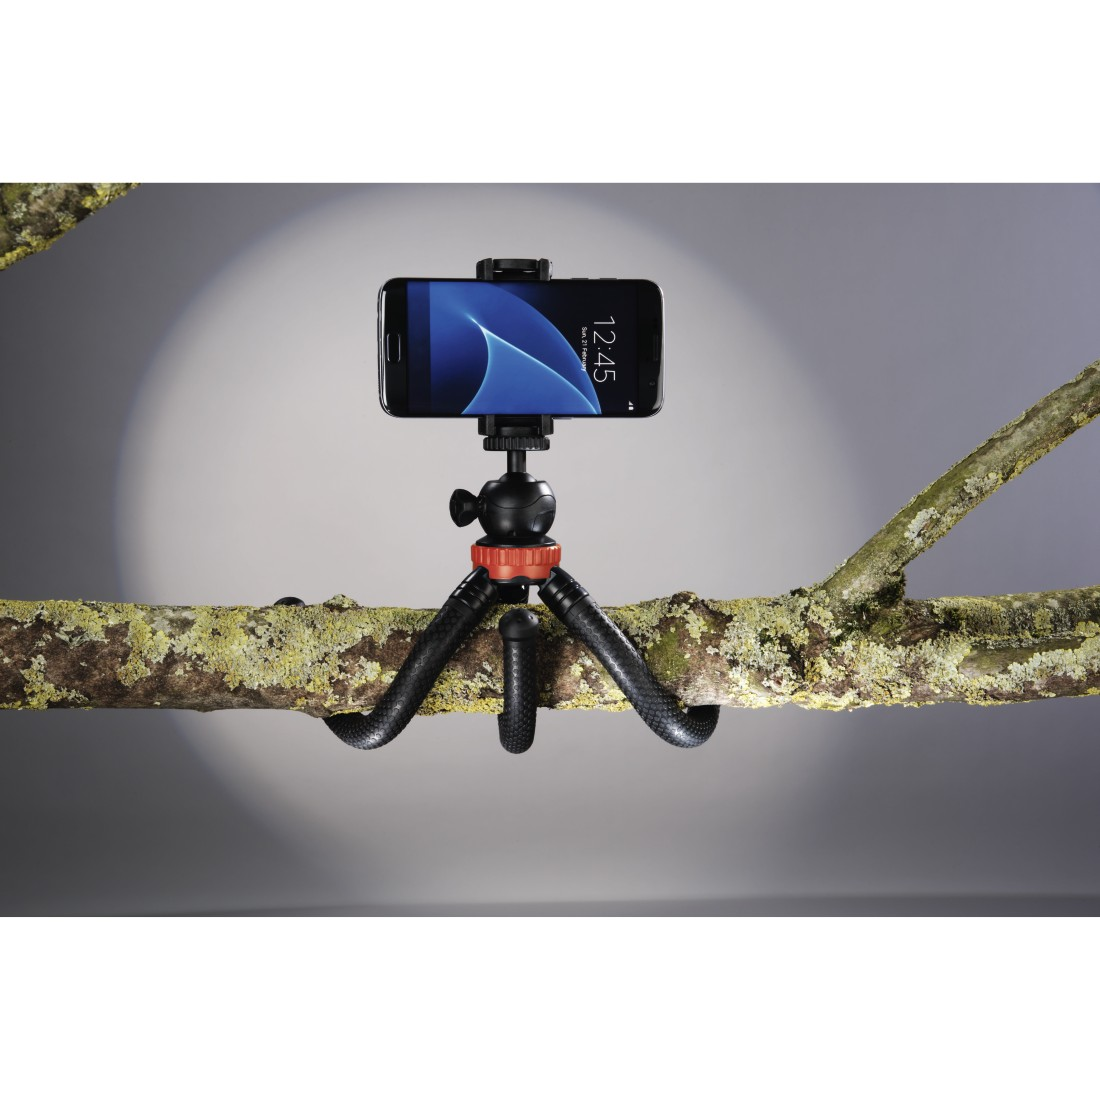 "awx2 High-Res Appliance 2 - Hama, ""FlexPro"" Tripod for Smartphone, GoPro and Photo Cameras, 27 cm, red"